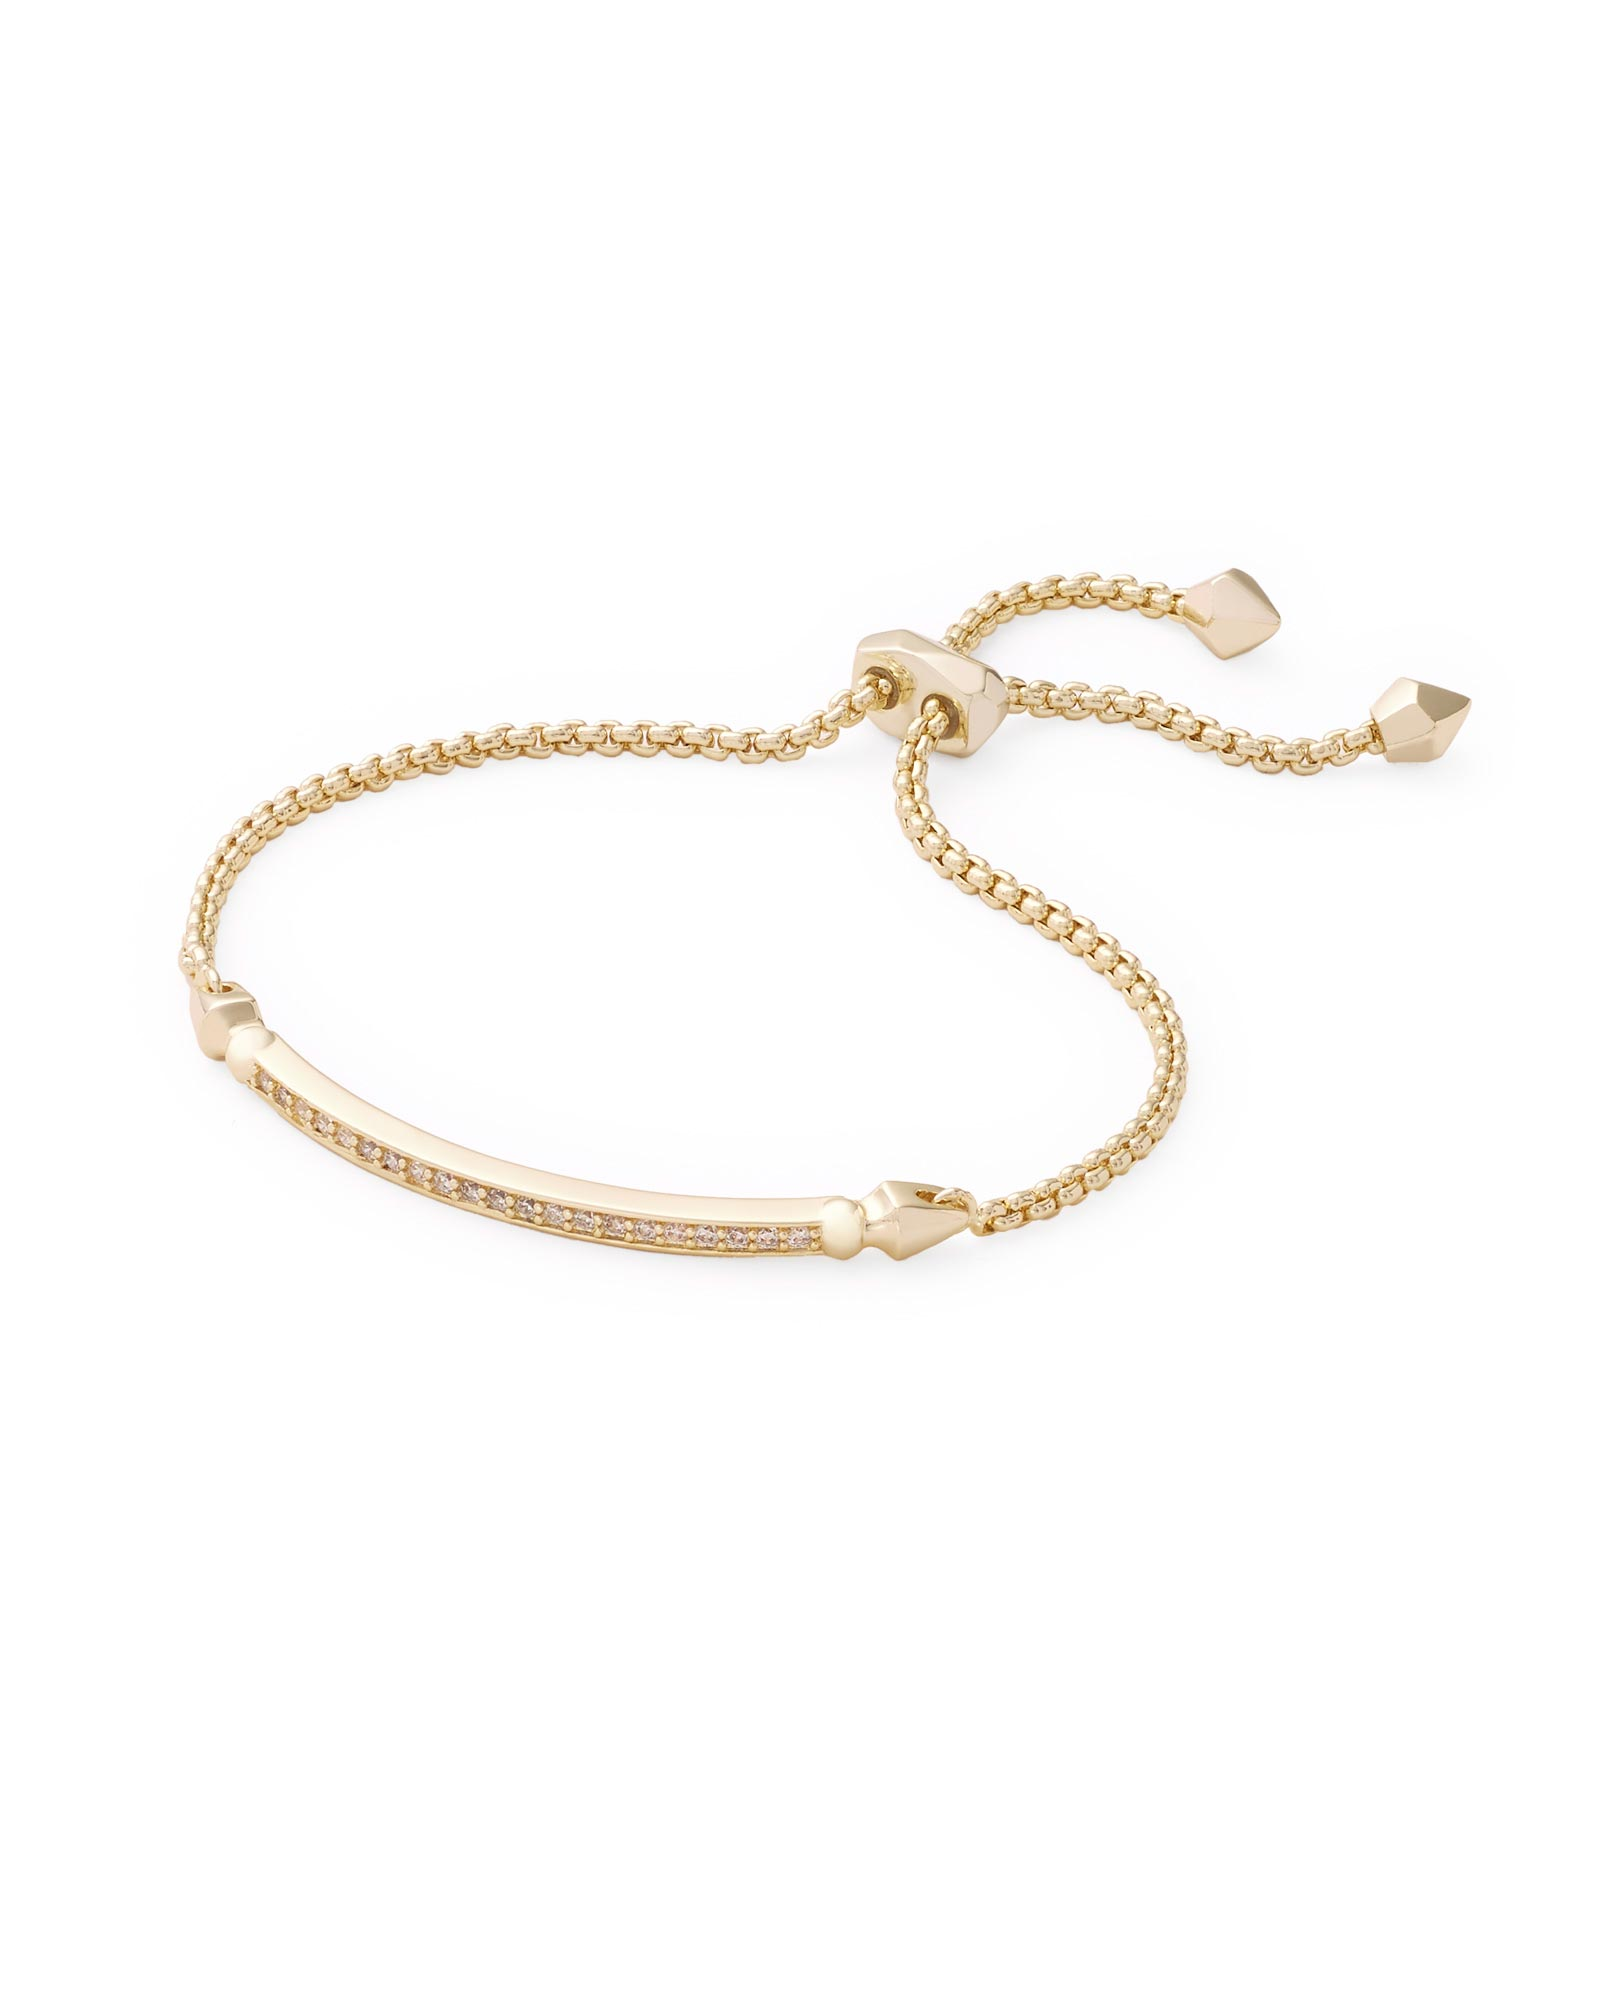 Ott Adjule Chain Bracelet In Gold